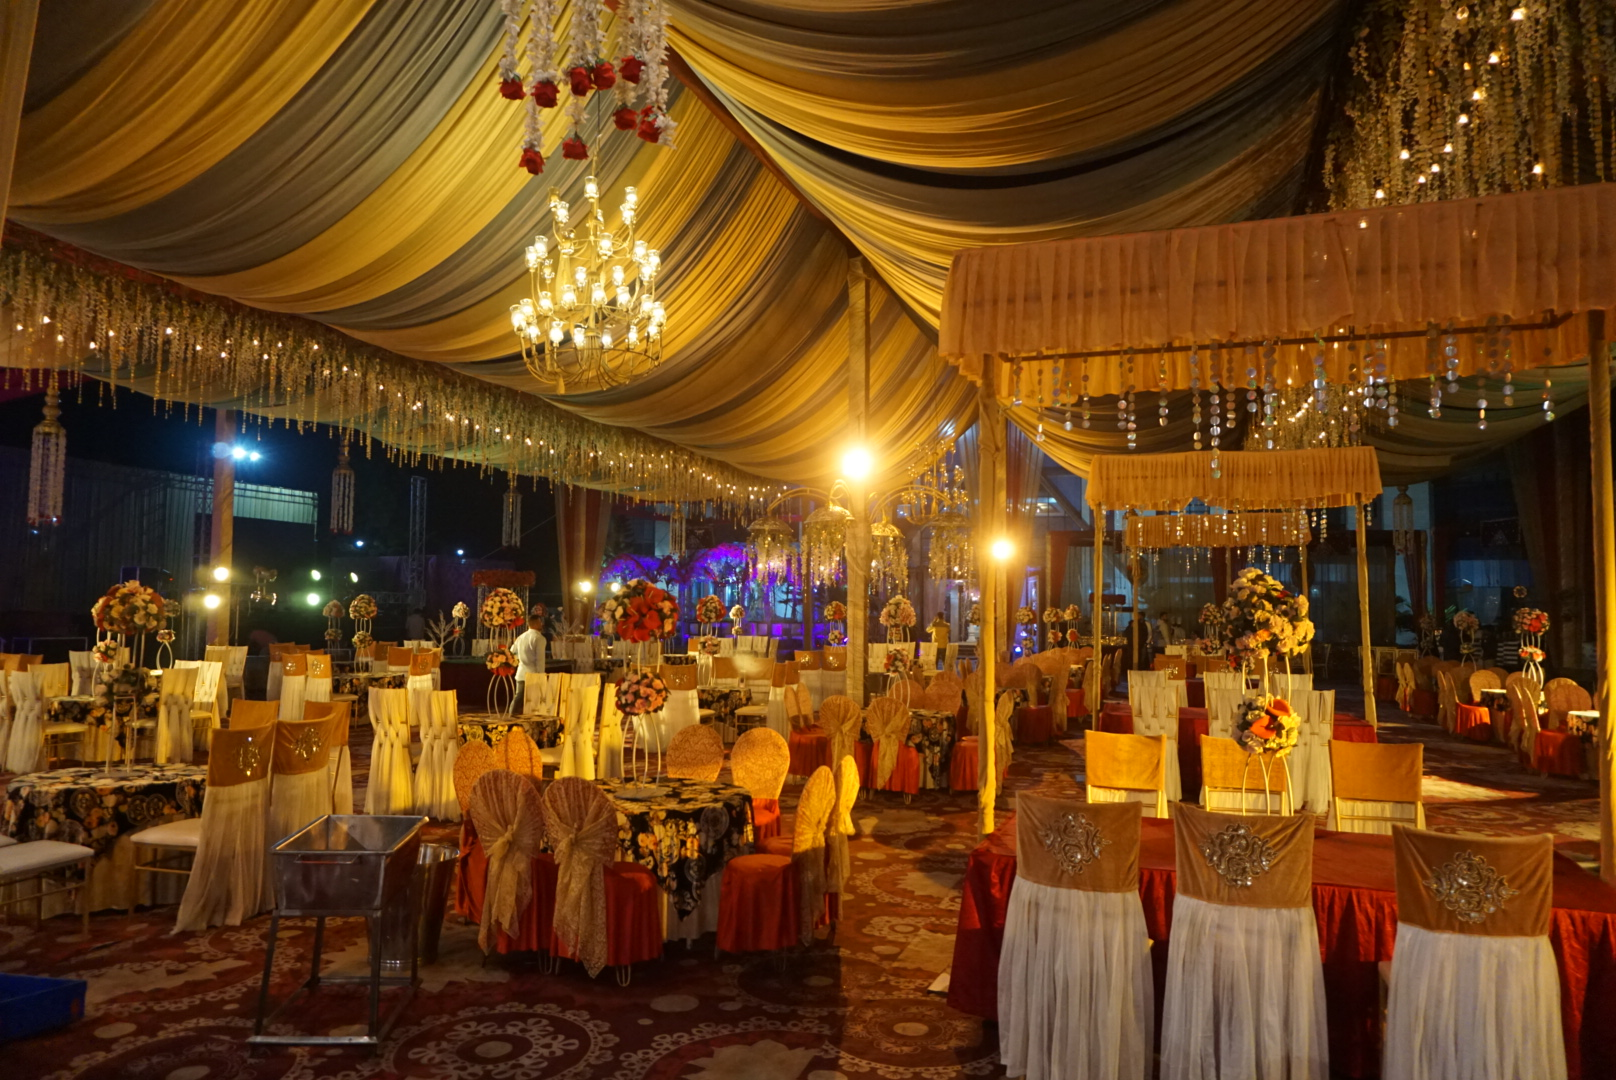 Red Tag Caterers, Outdoor catering in Mandi, non-vegetarian catering service in Mandi, luxury caterers in Mandi, affordable catering company in Mandi